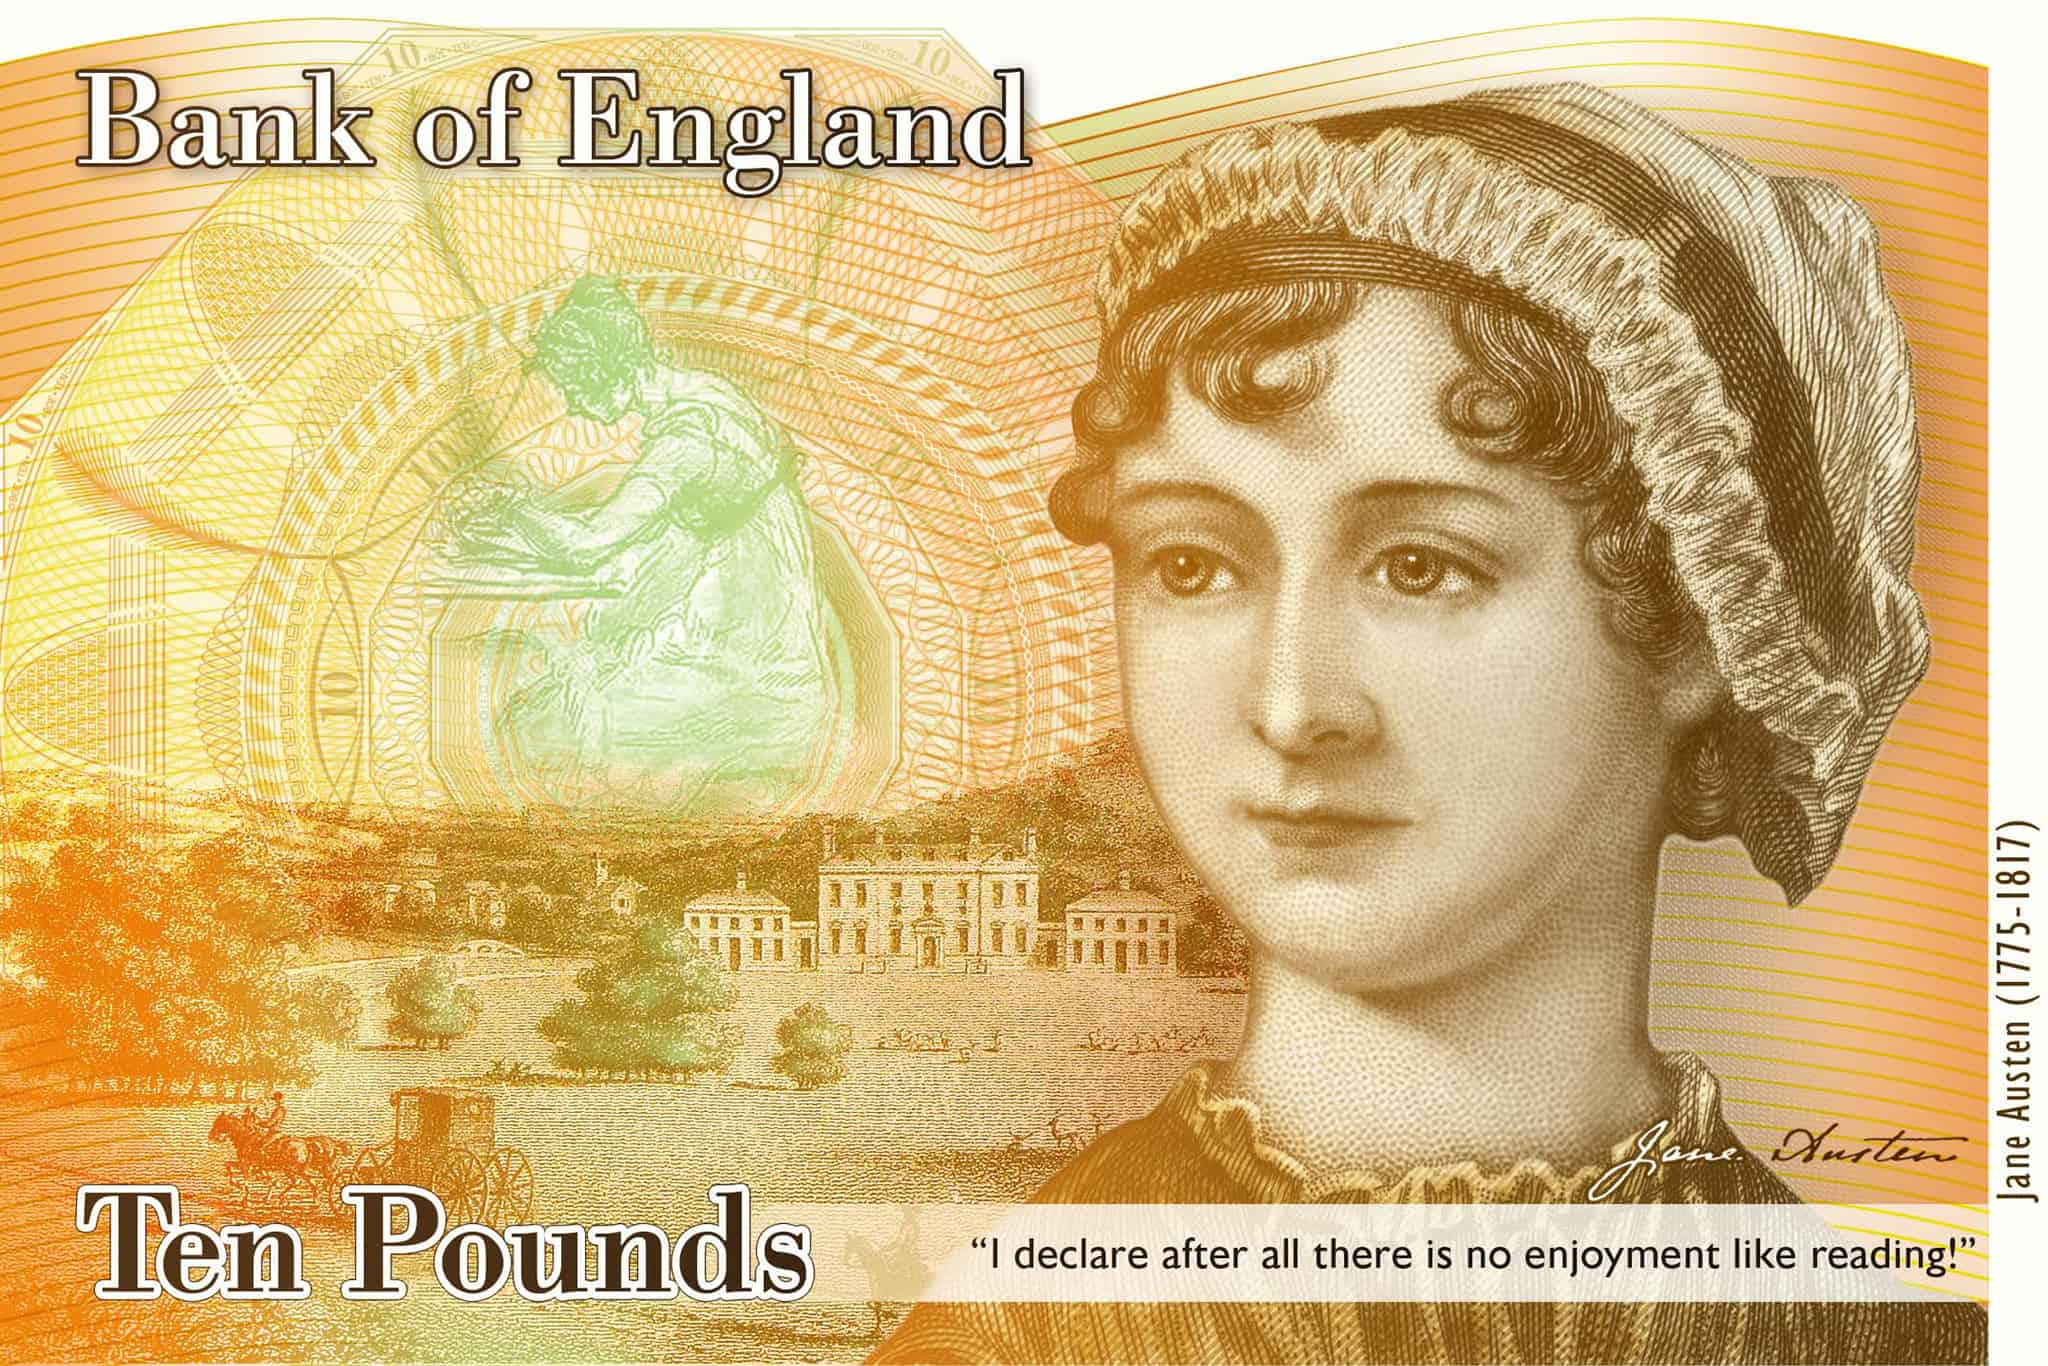 Jane-Austen-new-bank-note-c